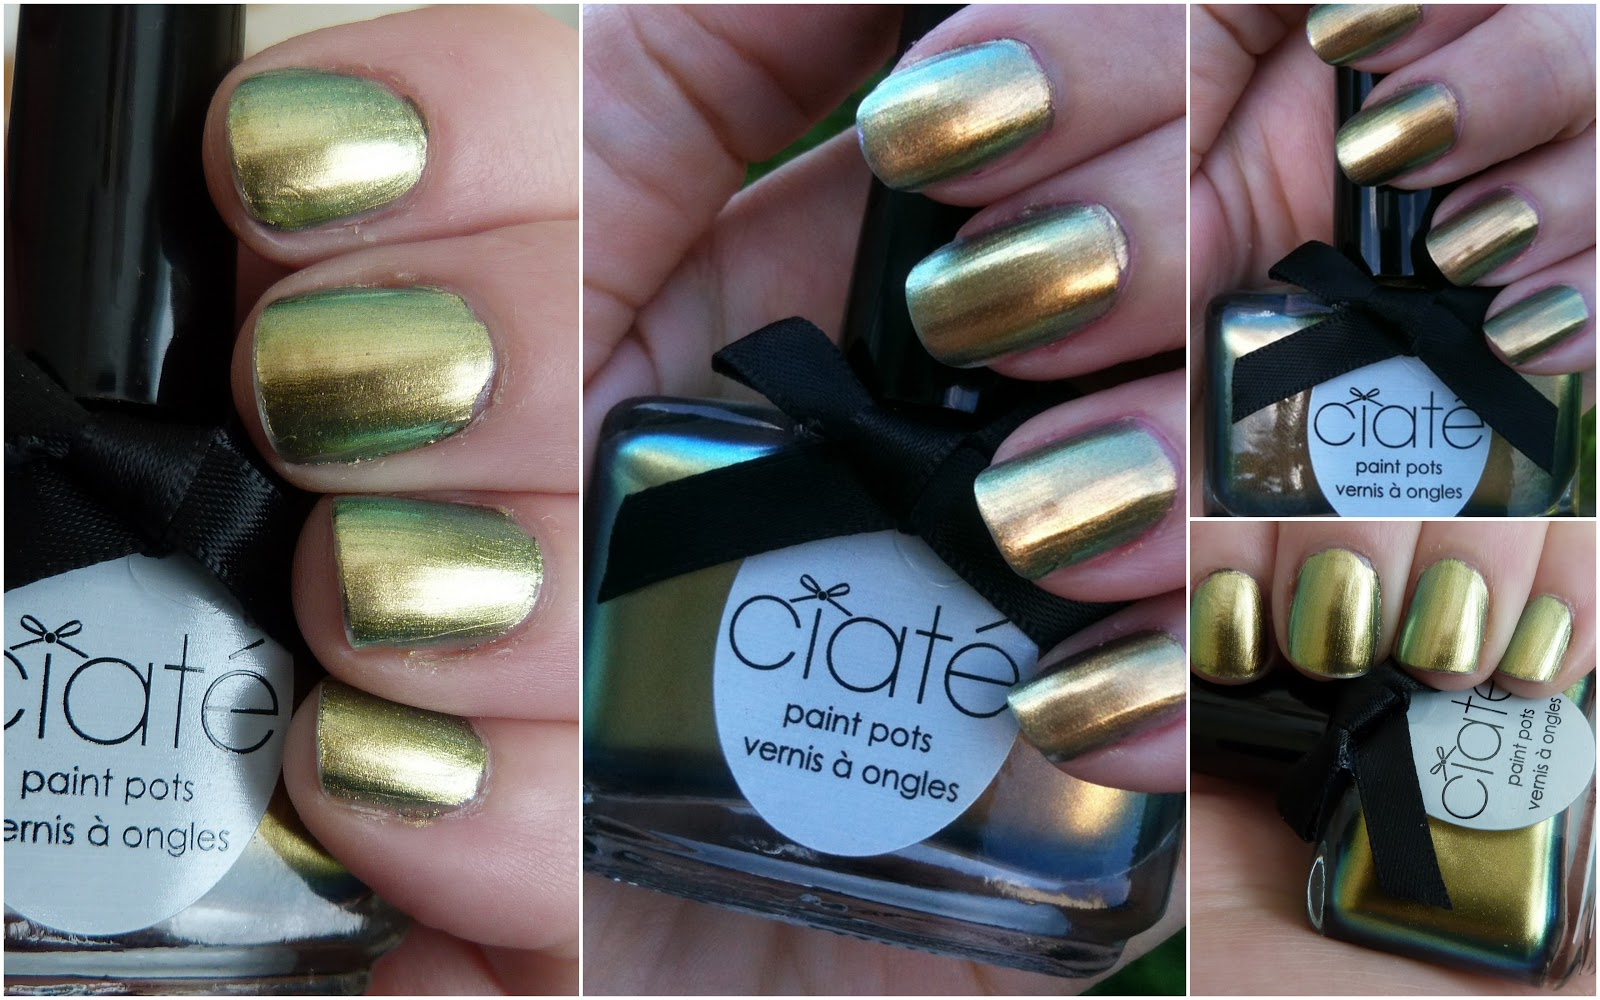 Ciate Oil Slick photos and review | Lovely Girlie Bits - Best Irish ...